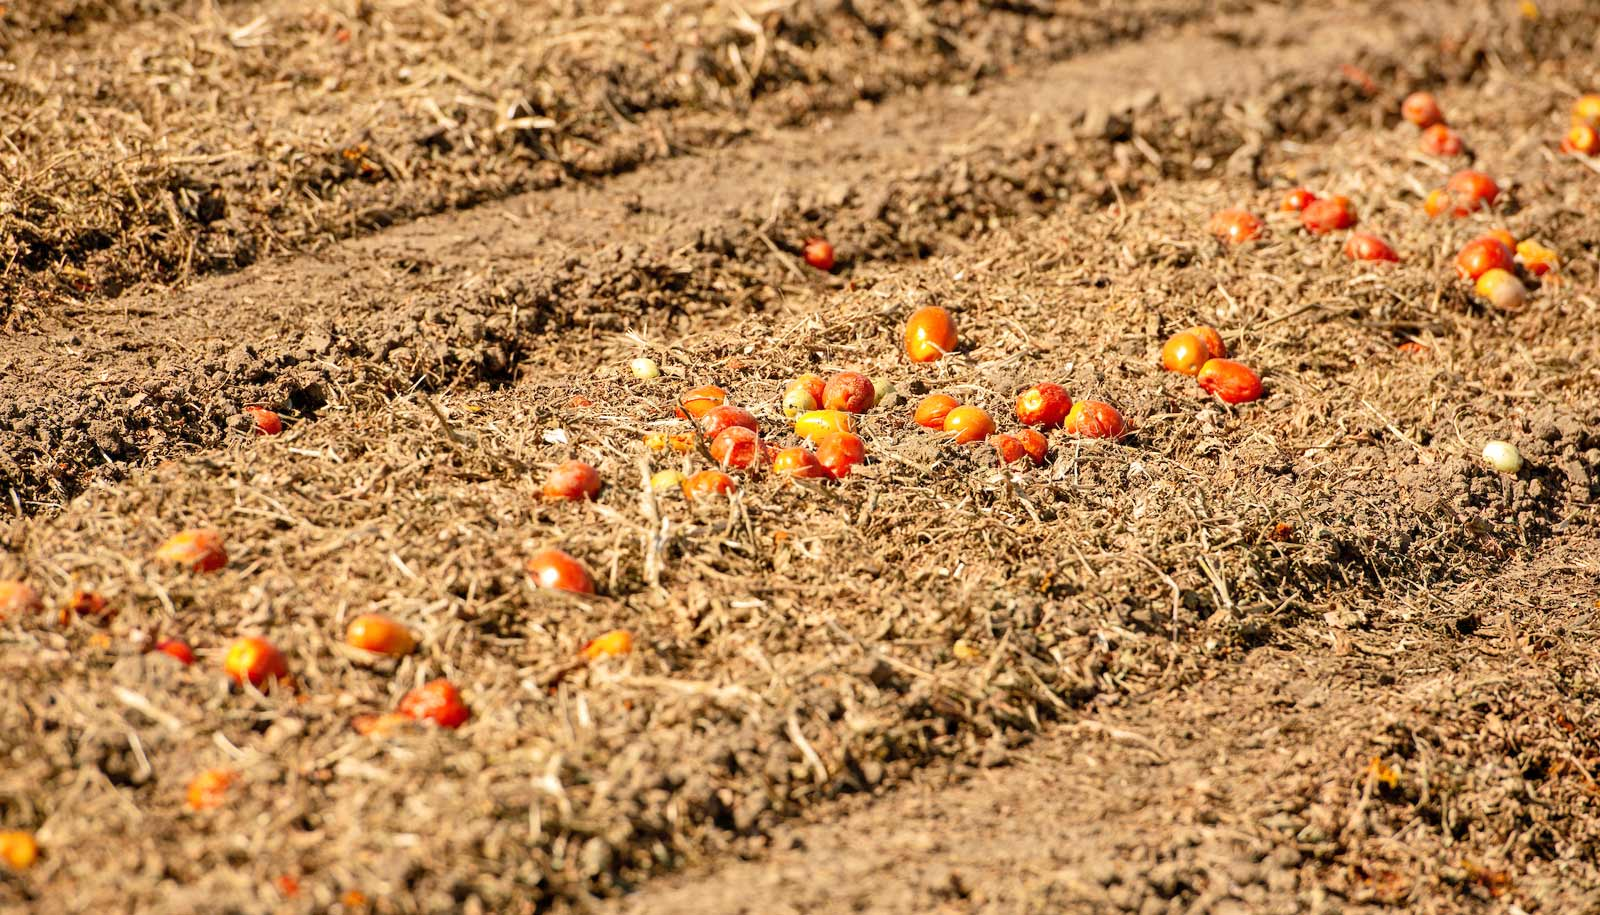 line of fallen tomatoes in empty field